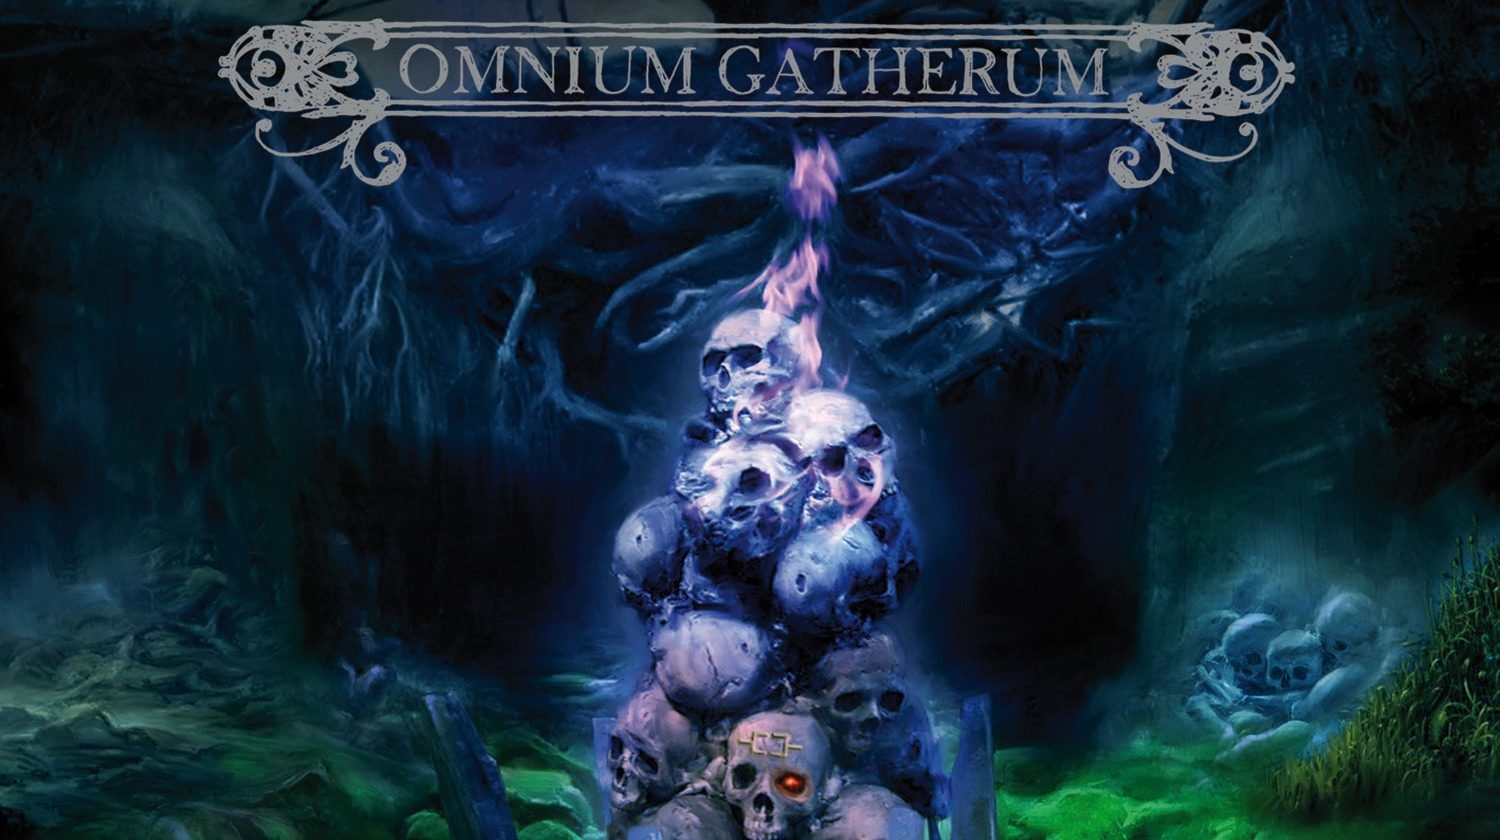 Omnium Gatherum The Burning Cold